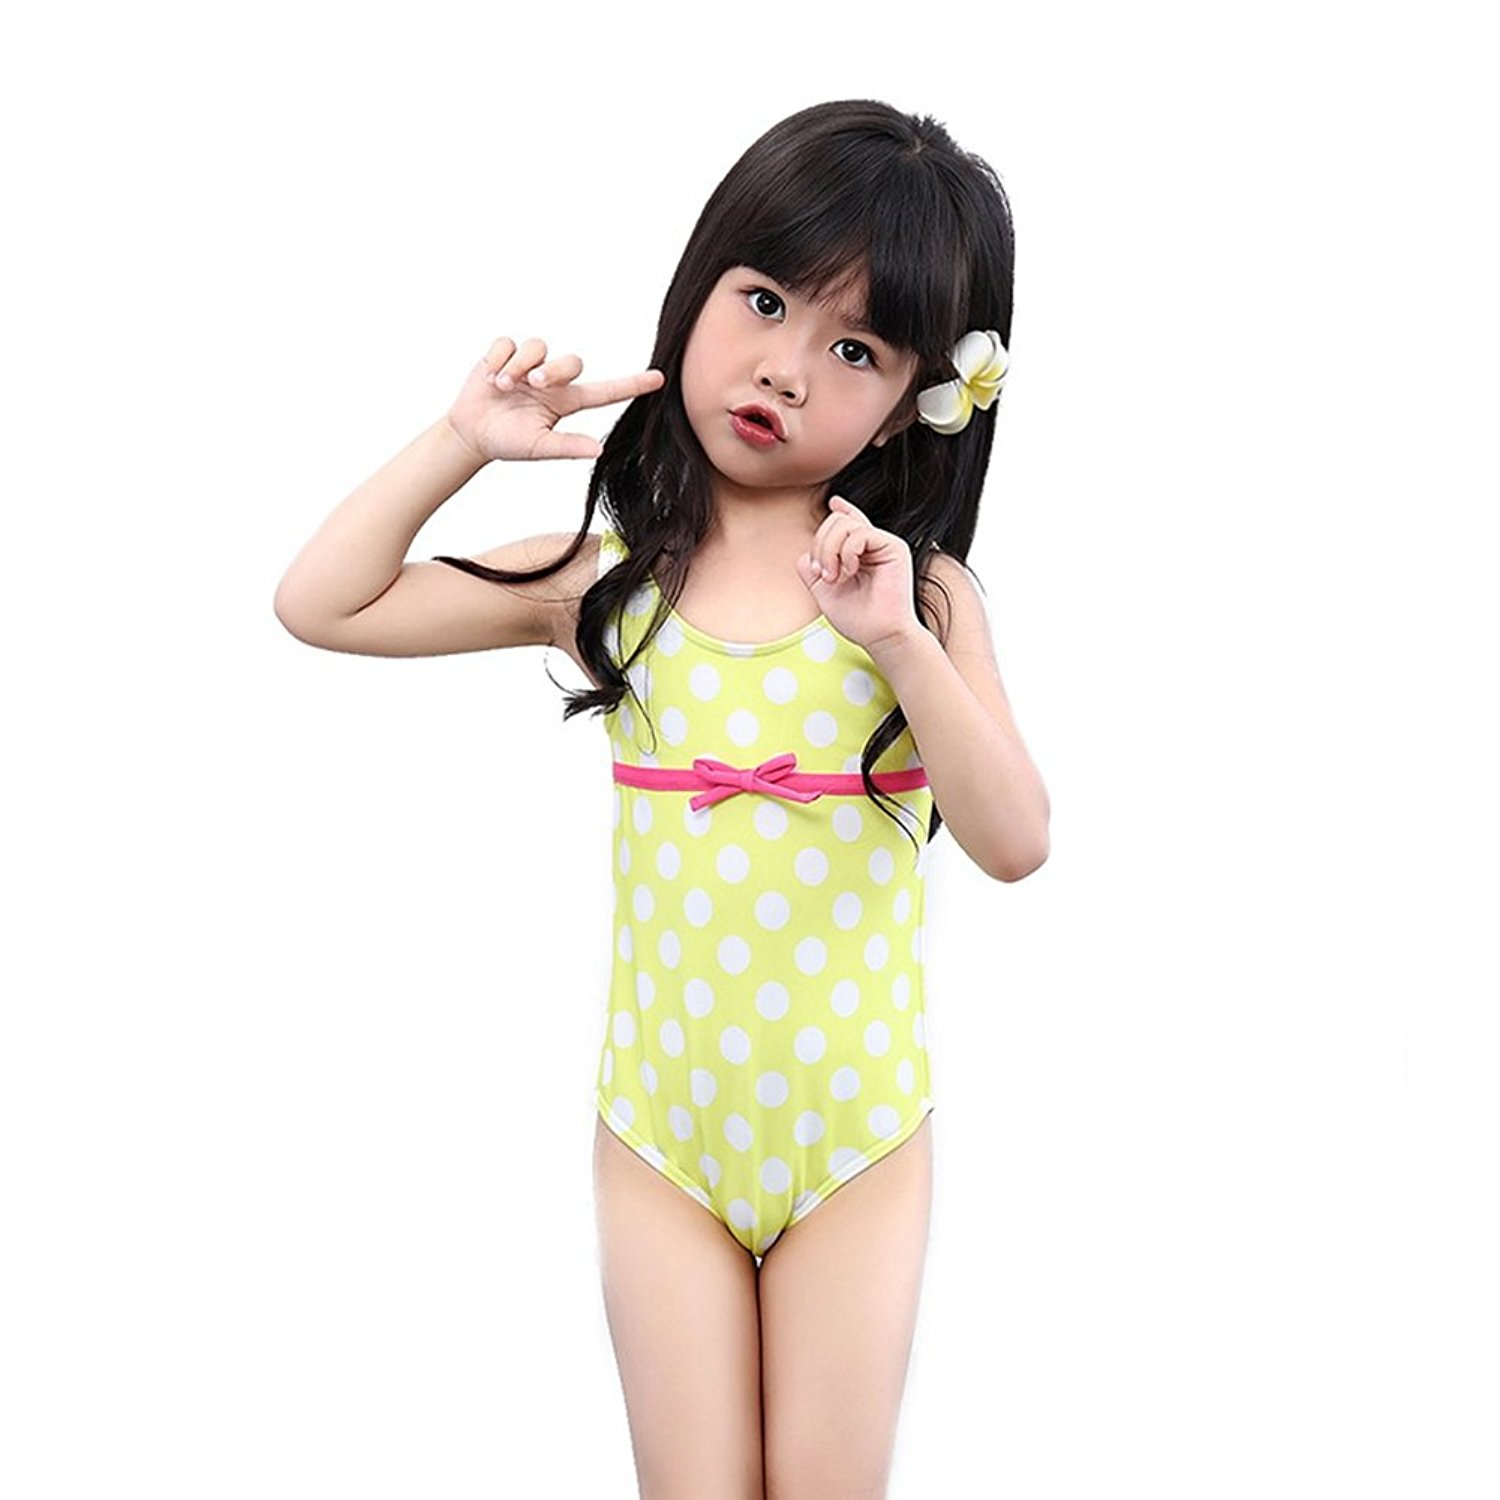 33e2788423dca BERTERI One-Piece Cute White Dots Swimsuit Bathing Suits Bikini Swimwear  for Baby Girls/Kid/Toddler/Infant/Children Take Photos Summmer Beach Outfit  Red ...